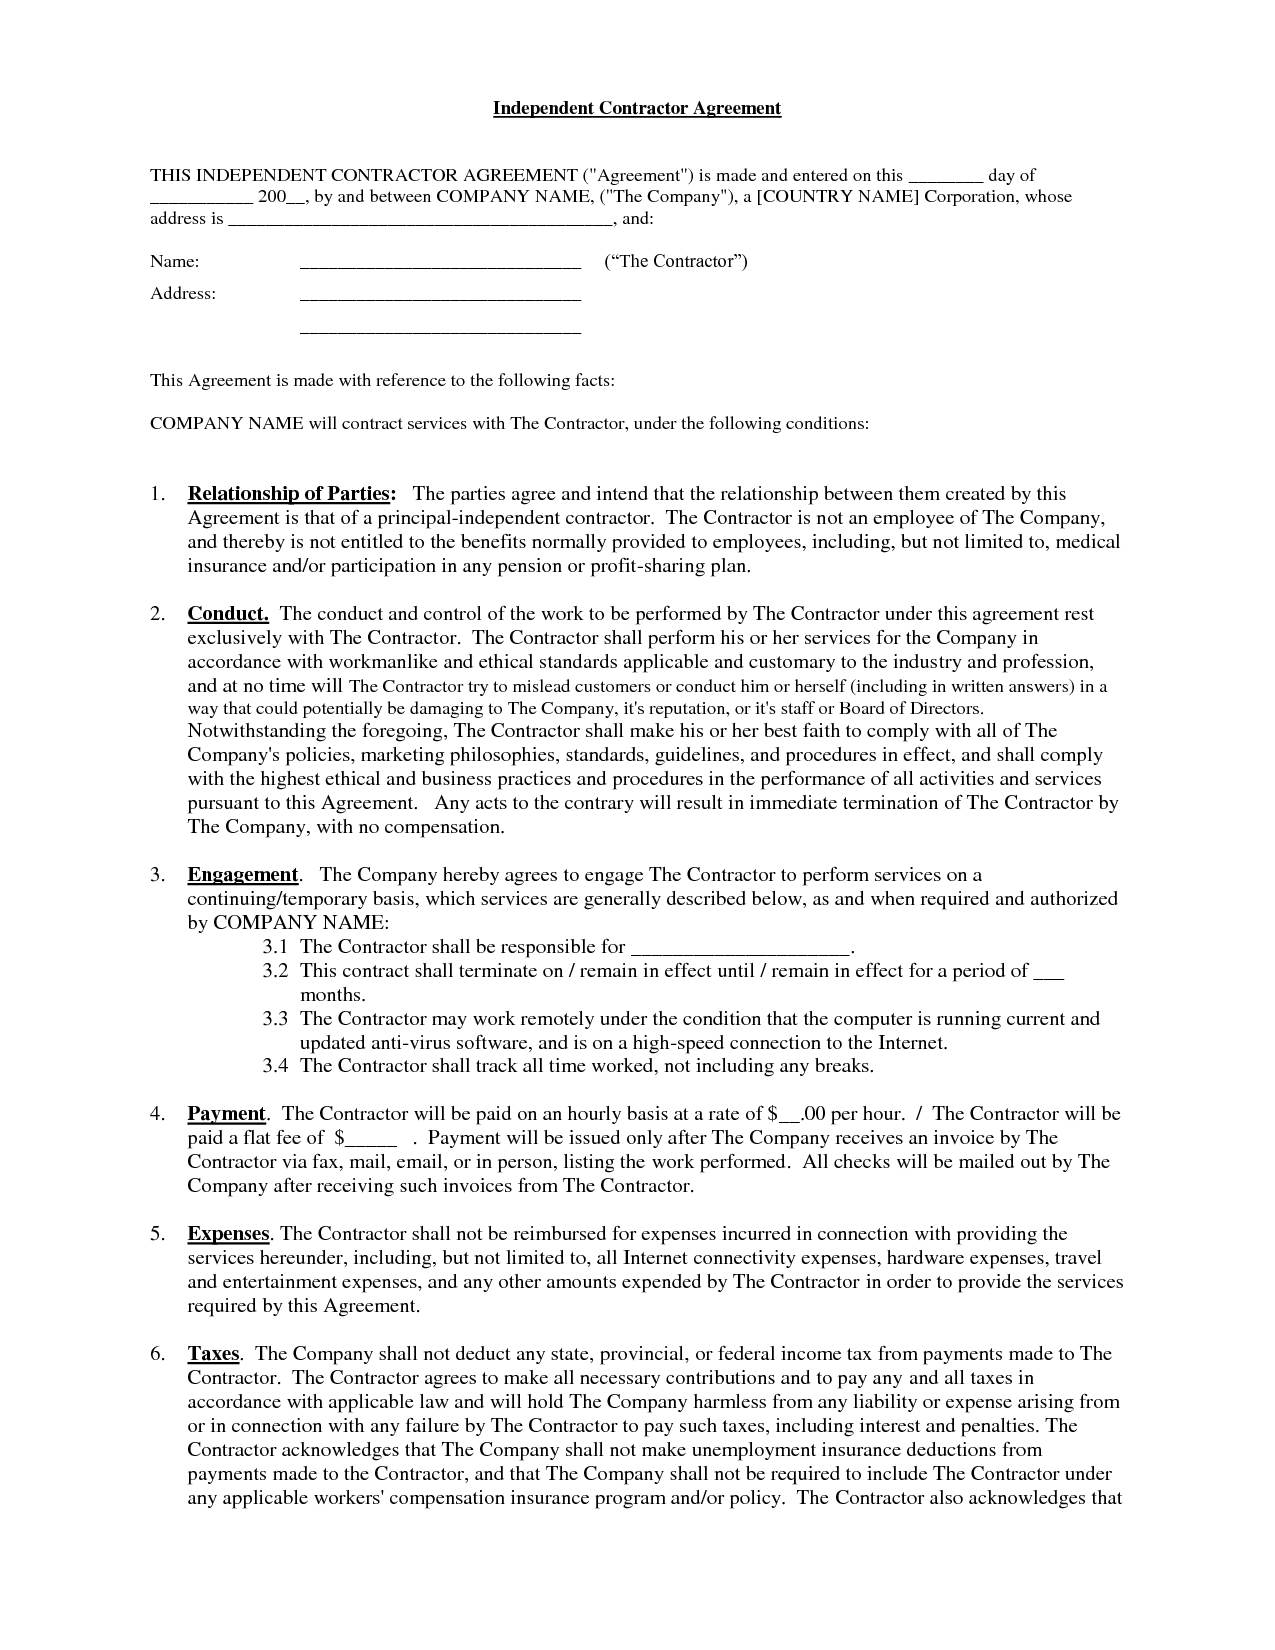 Independent Contractor Contract Sample Free Printable